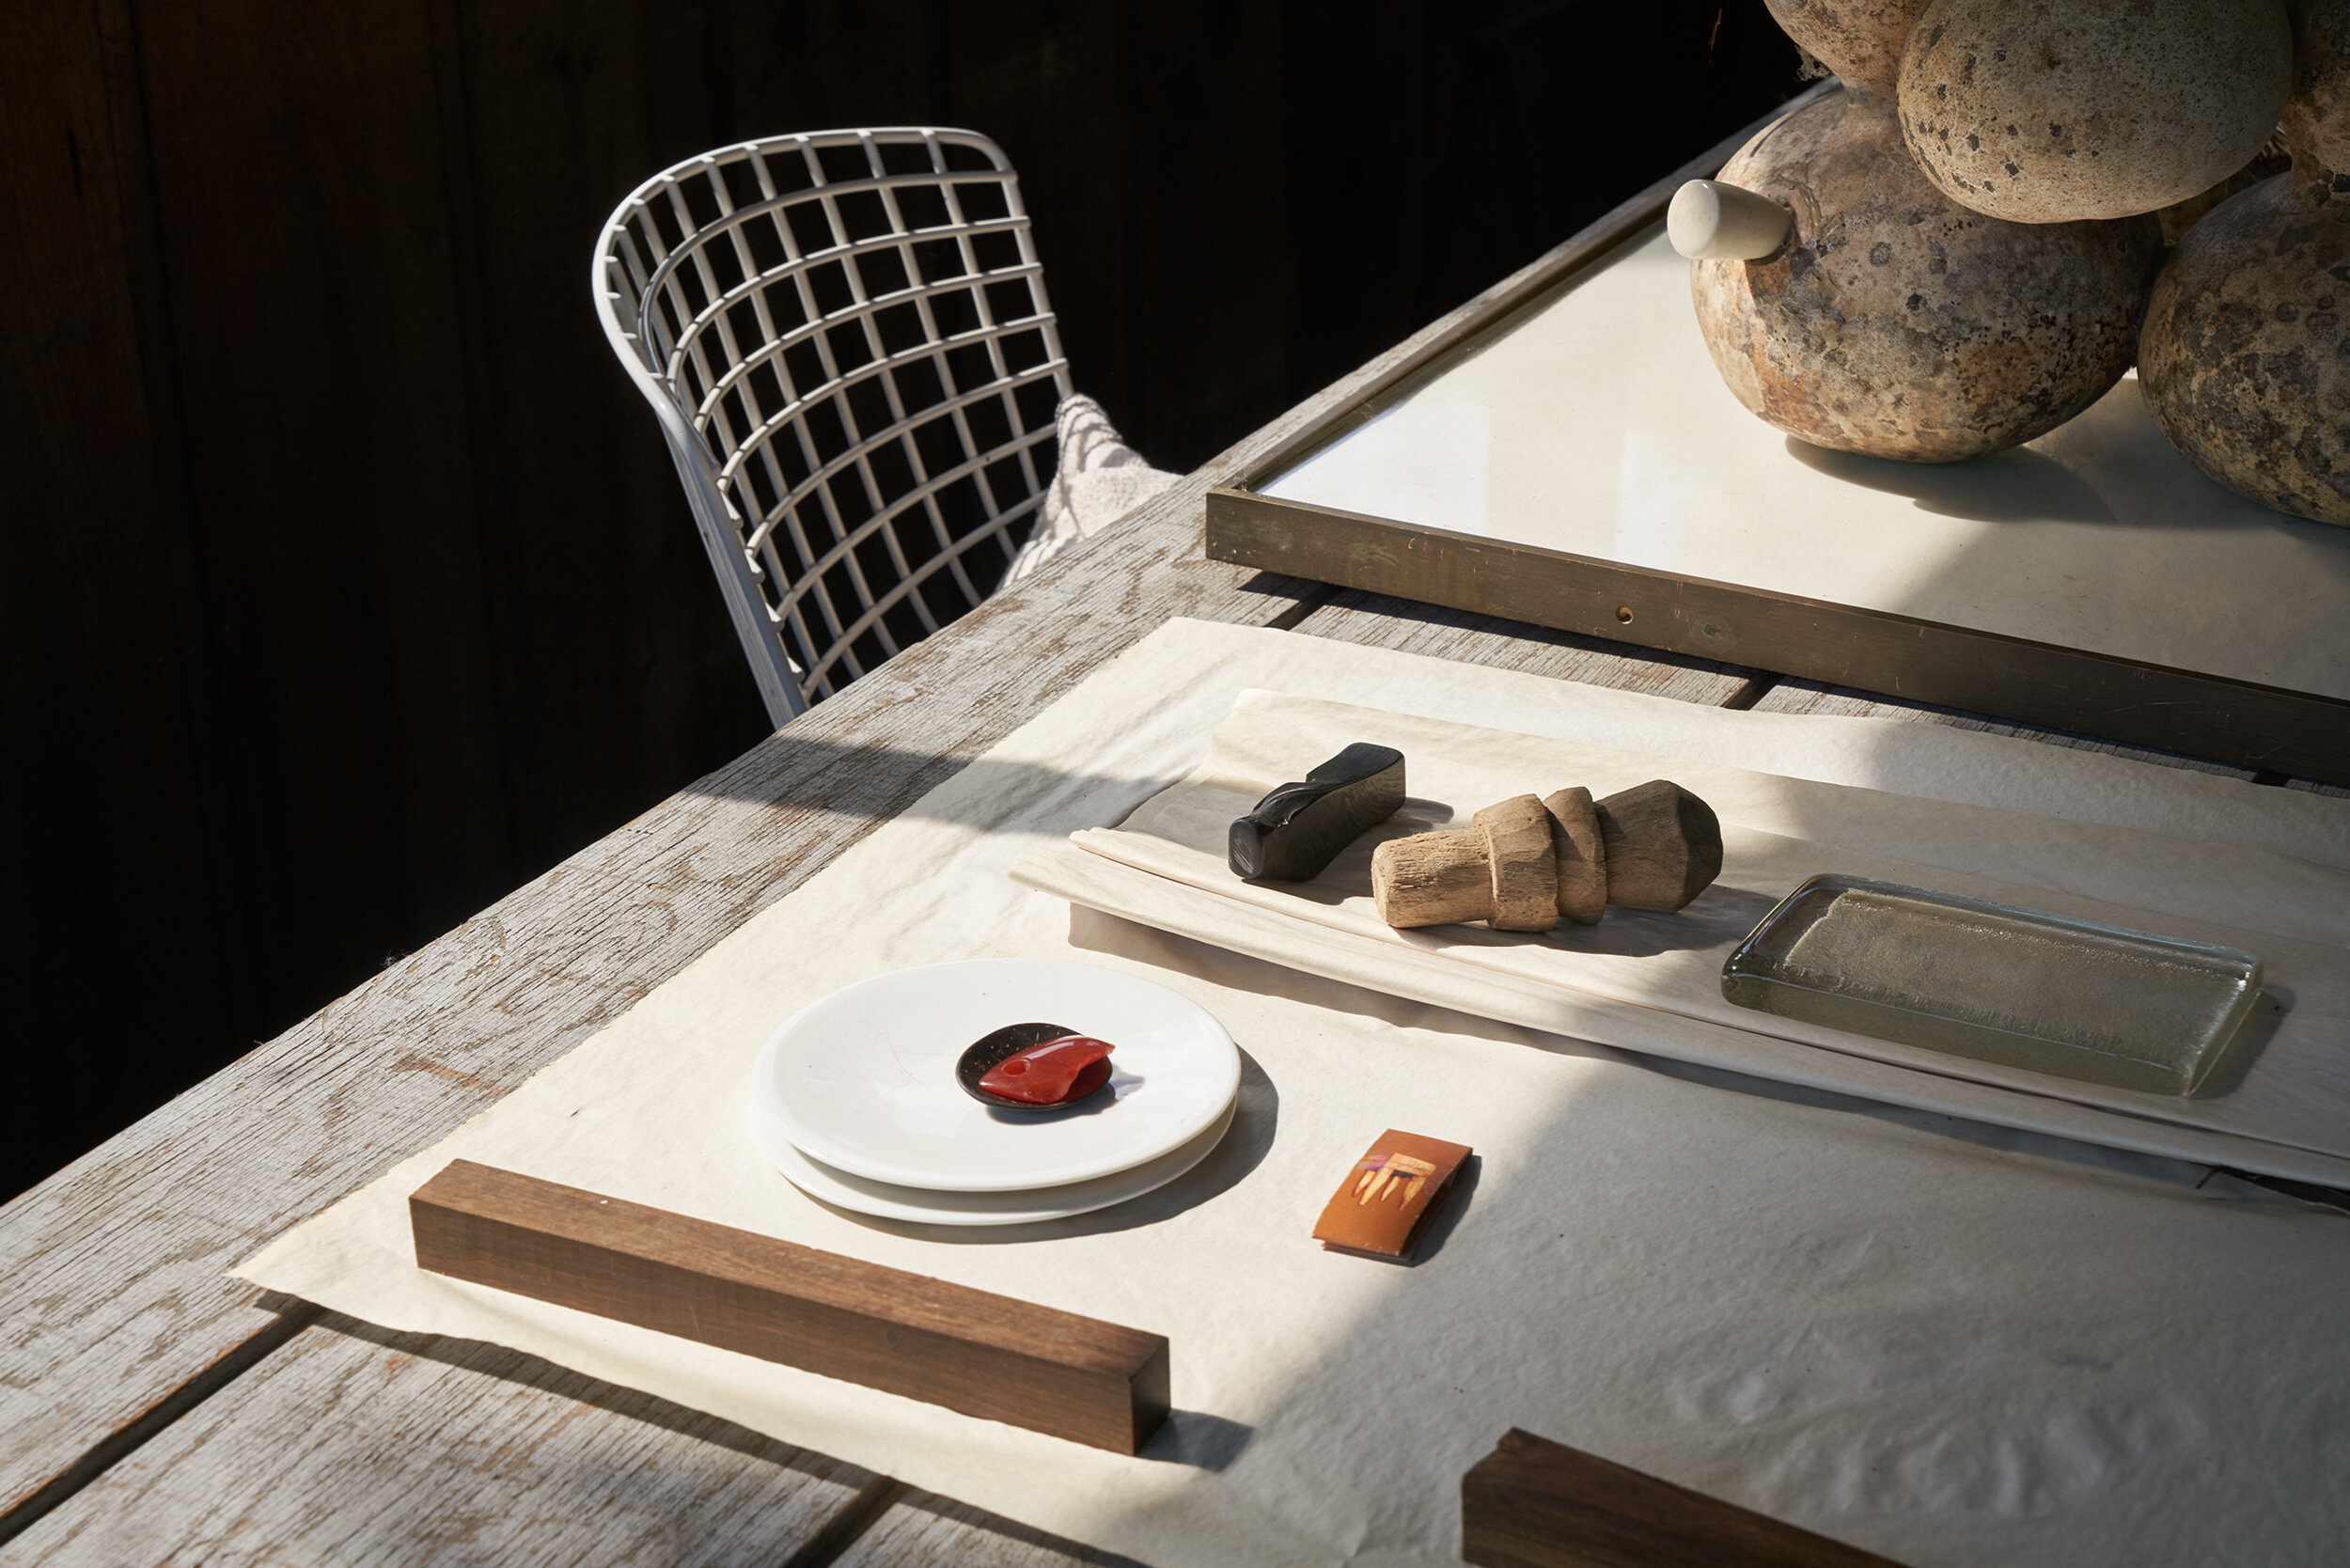 Studio table with components for assemblages.